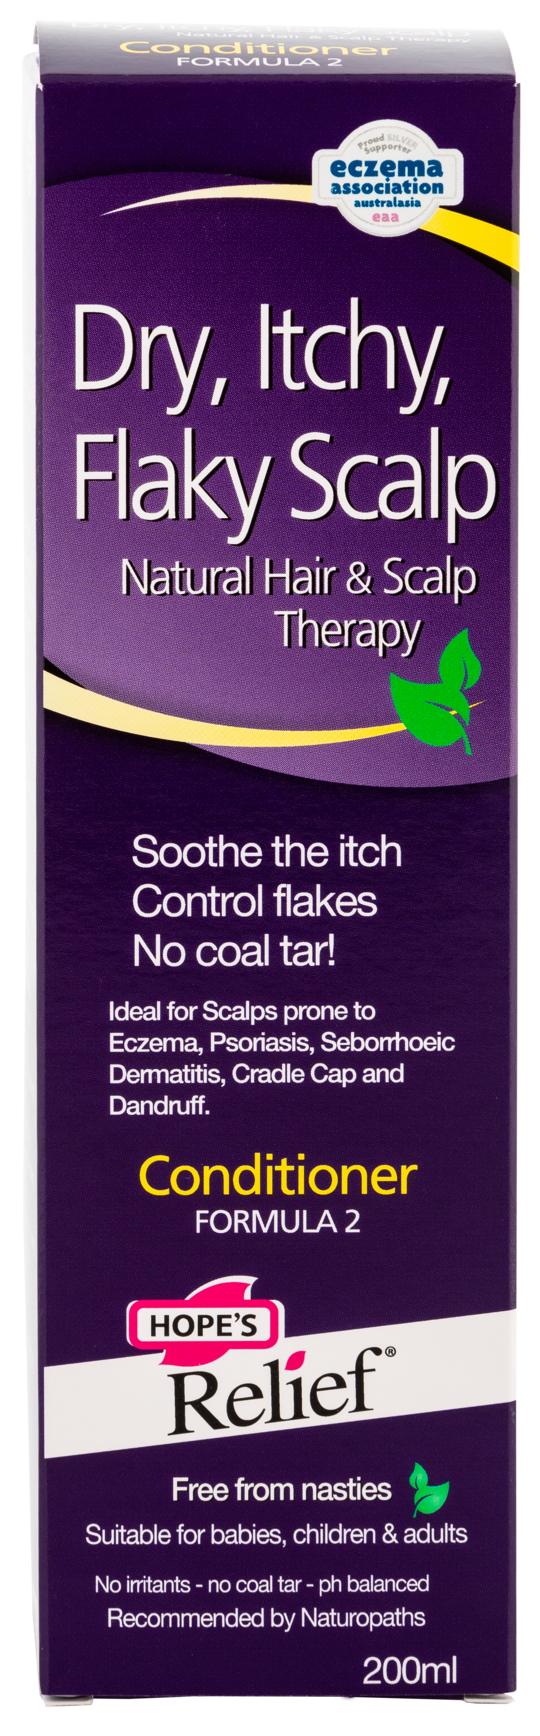 Hope's Relief Itchy Flaky Scalp Conditioner with Natural Ingredients